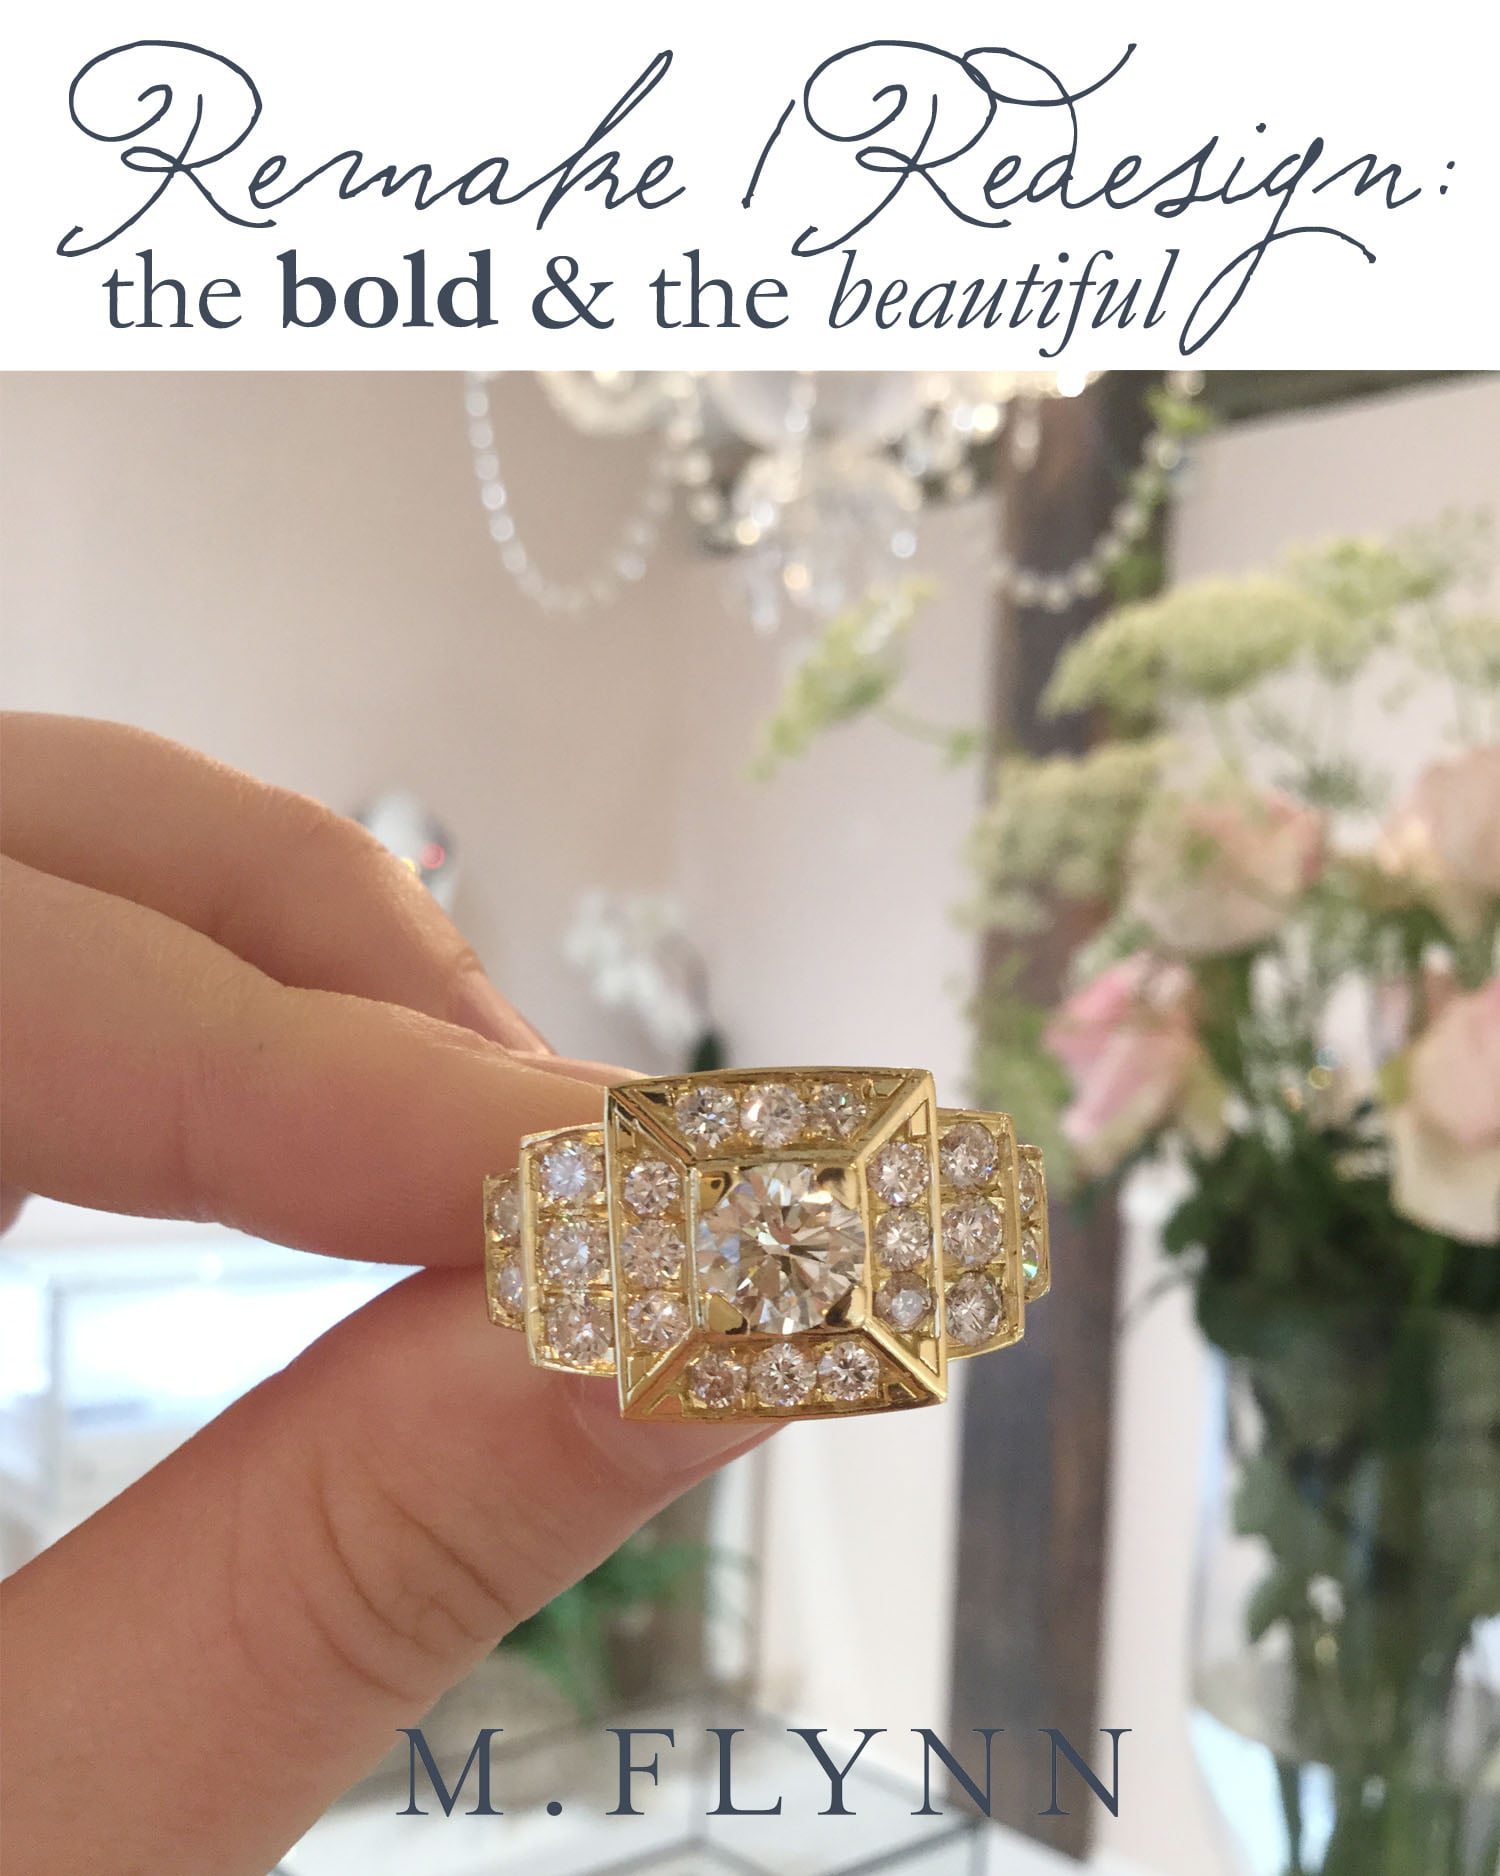 Remake|Redesign: The Bold & The Beautiful